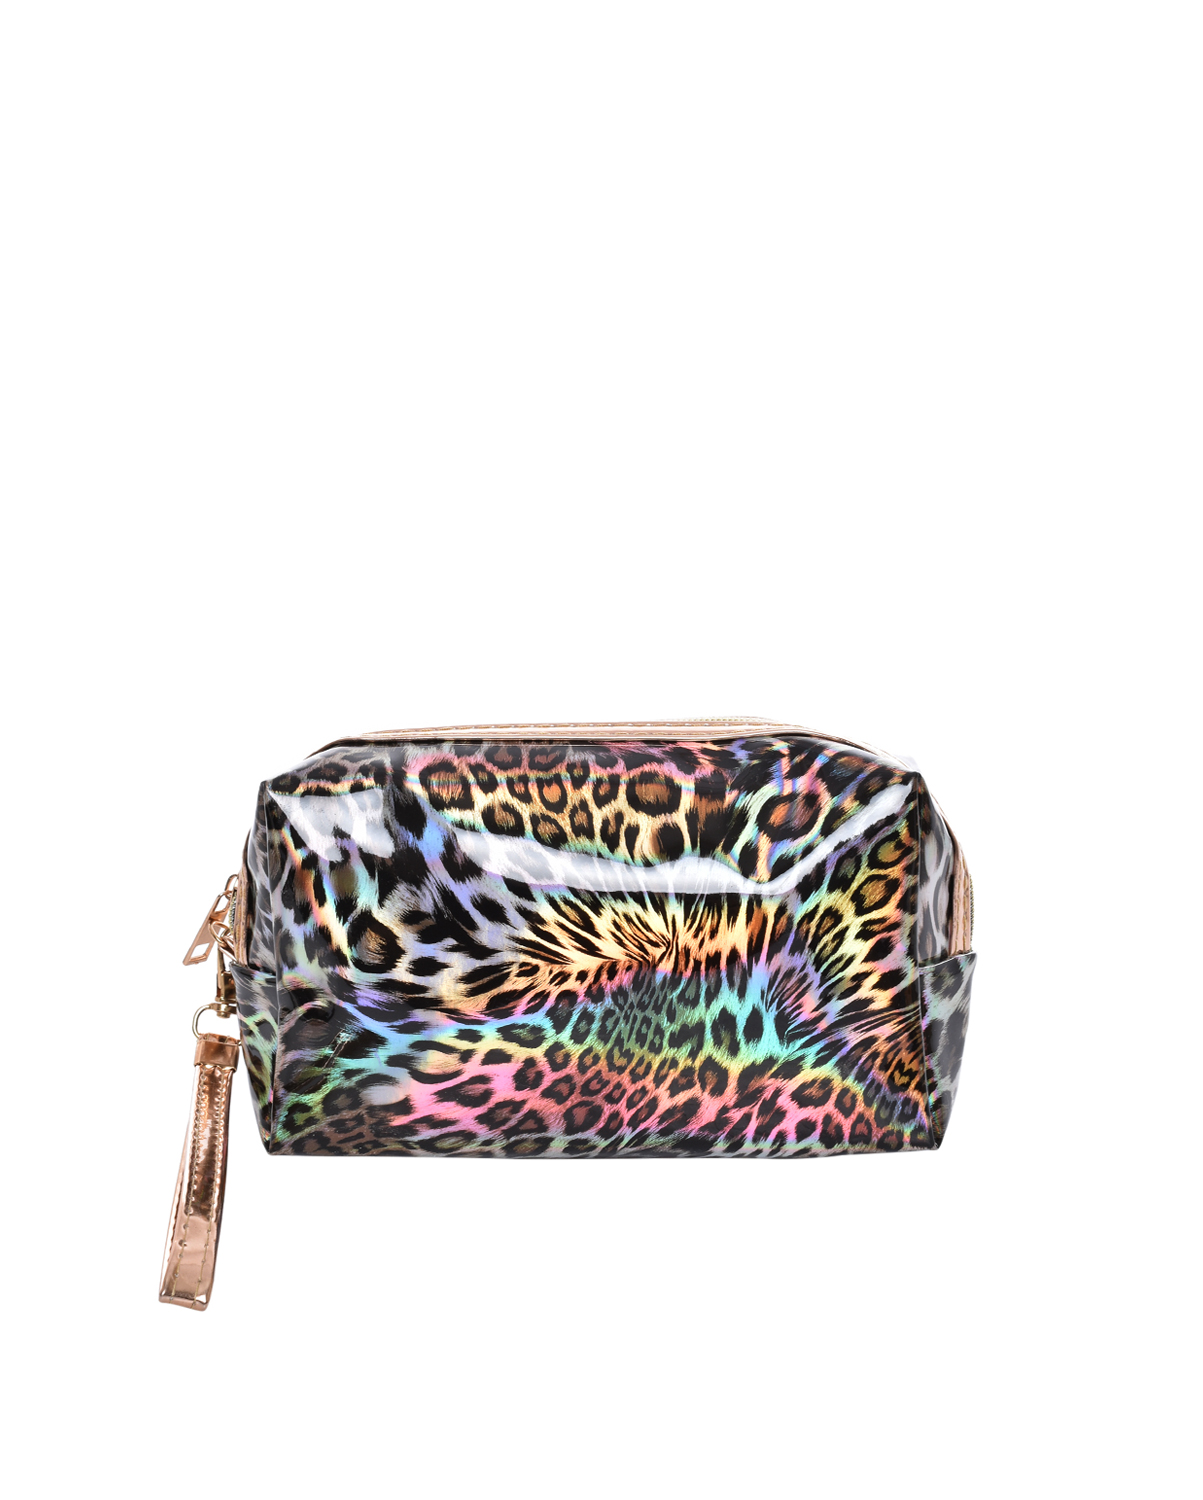 4e3694afb9 Get Incredible Discount Prices on our Wholesale Fashion Handbags Today!